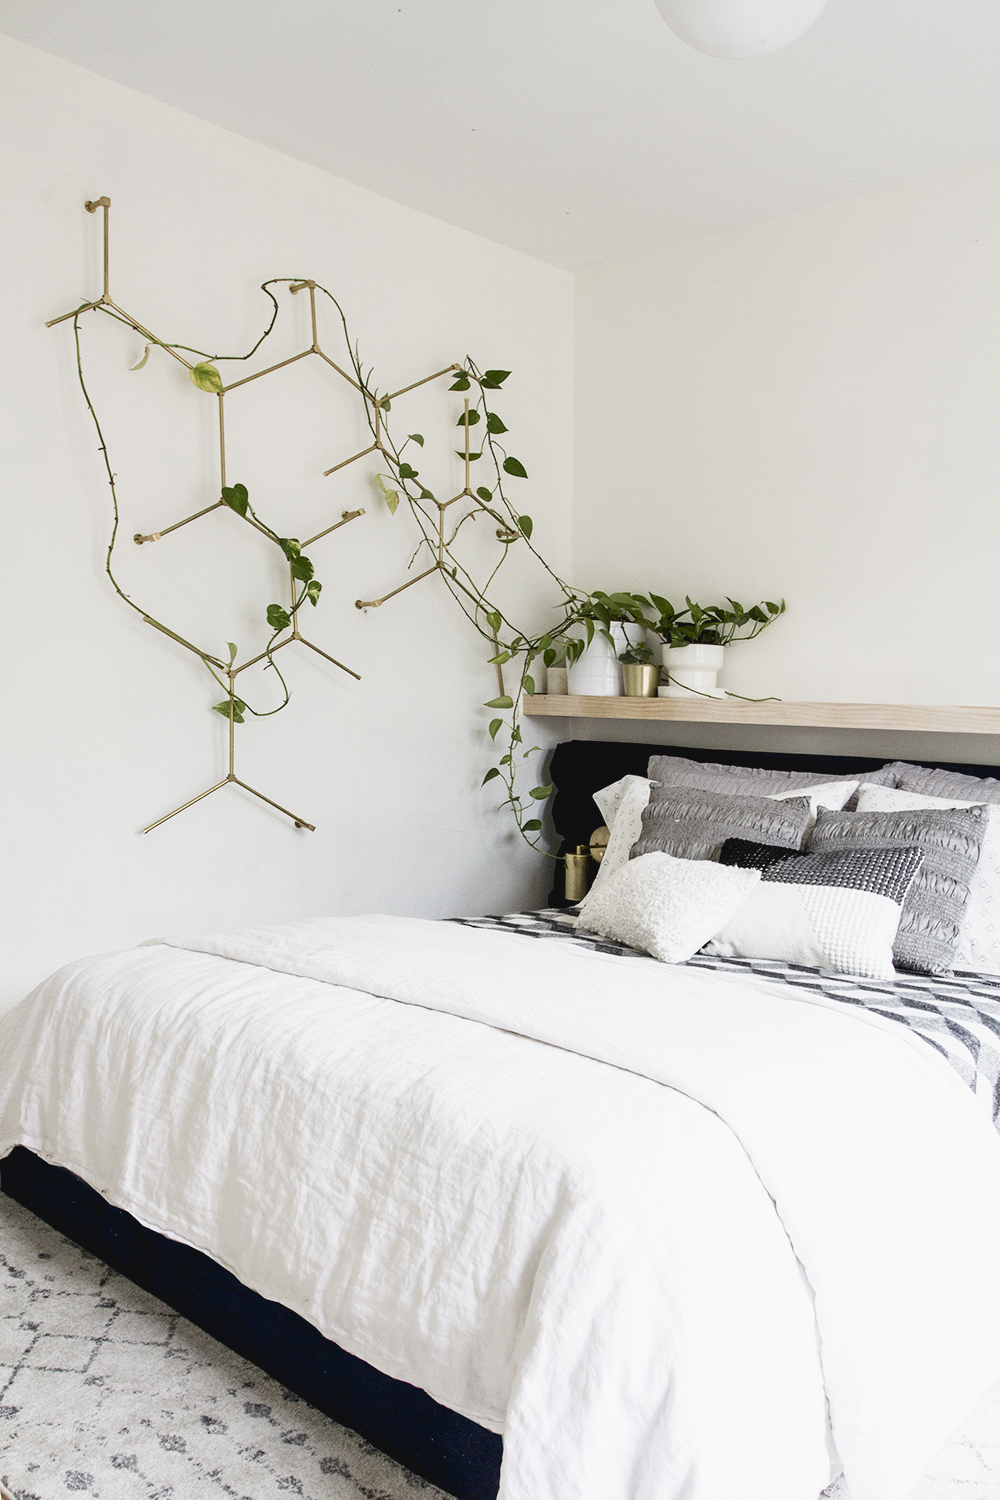 Brass Hex Trellis with Velvet Channel Tufted Headboard Guest Room | Deuce Cities Hen House